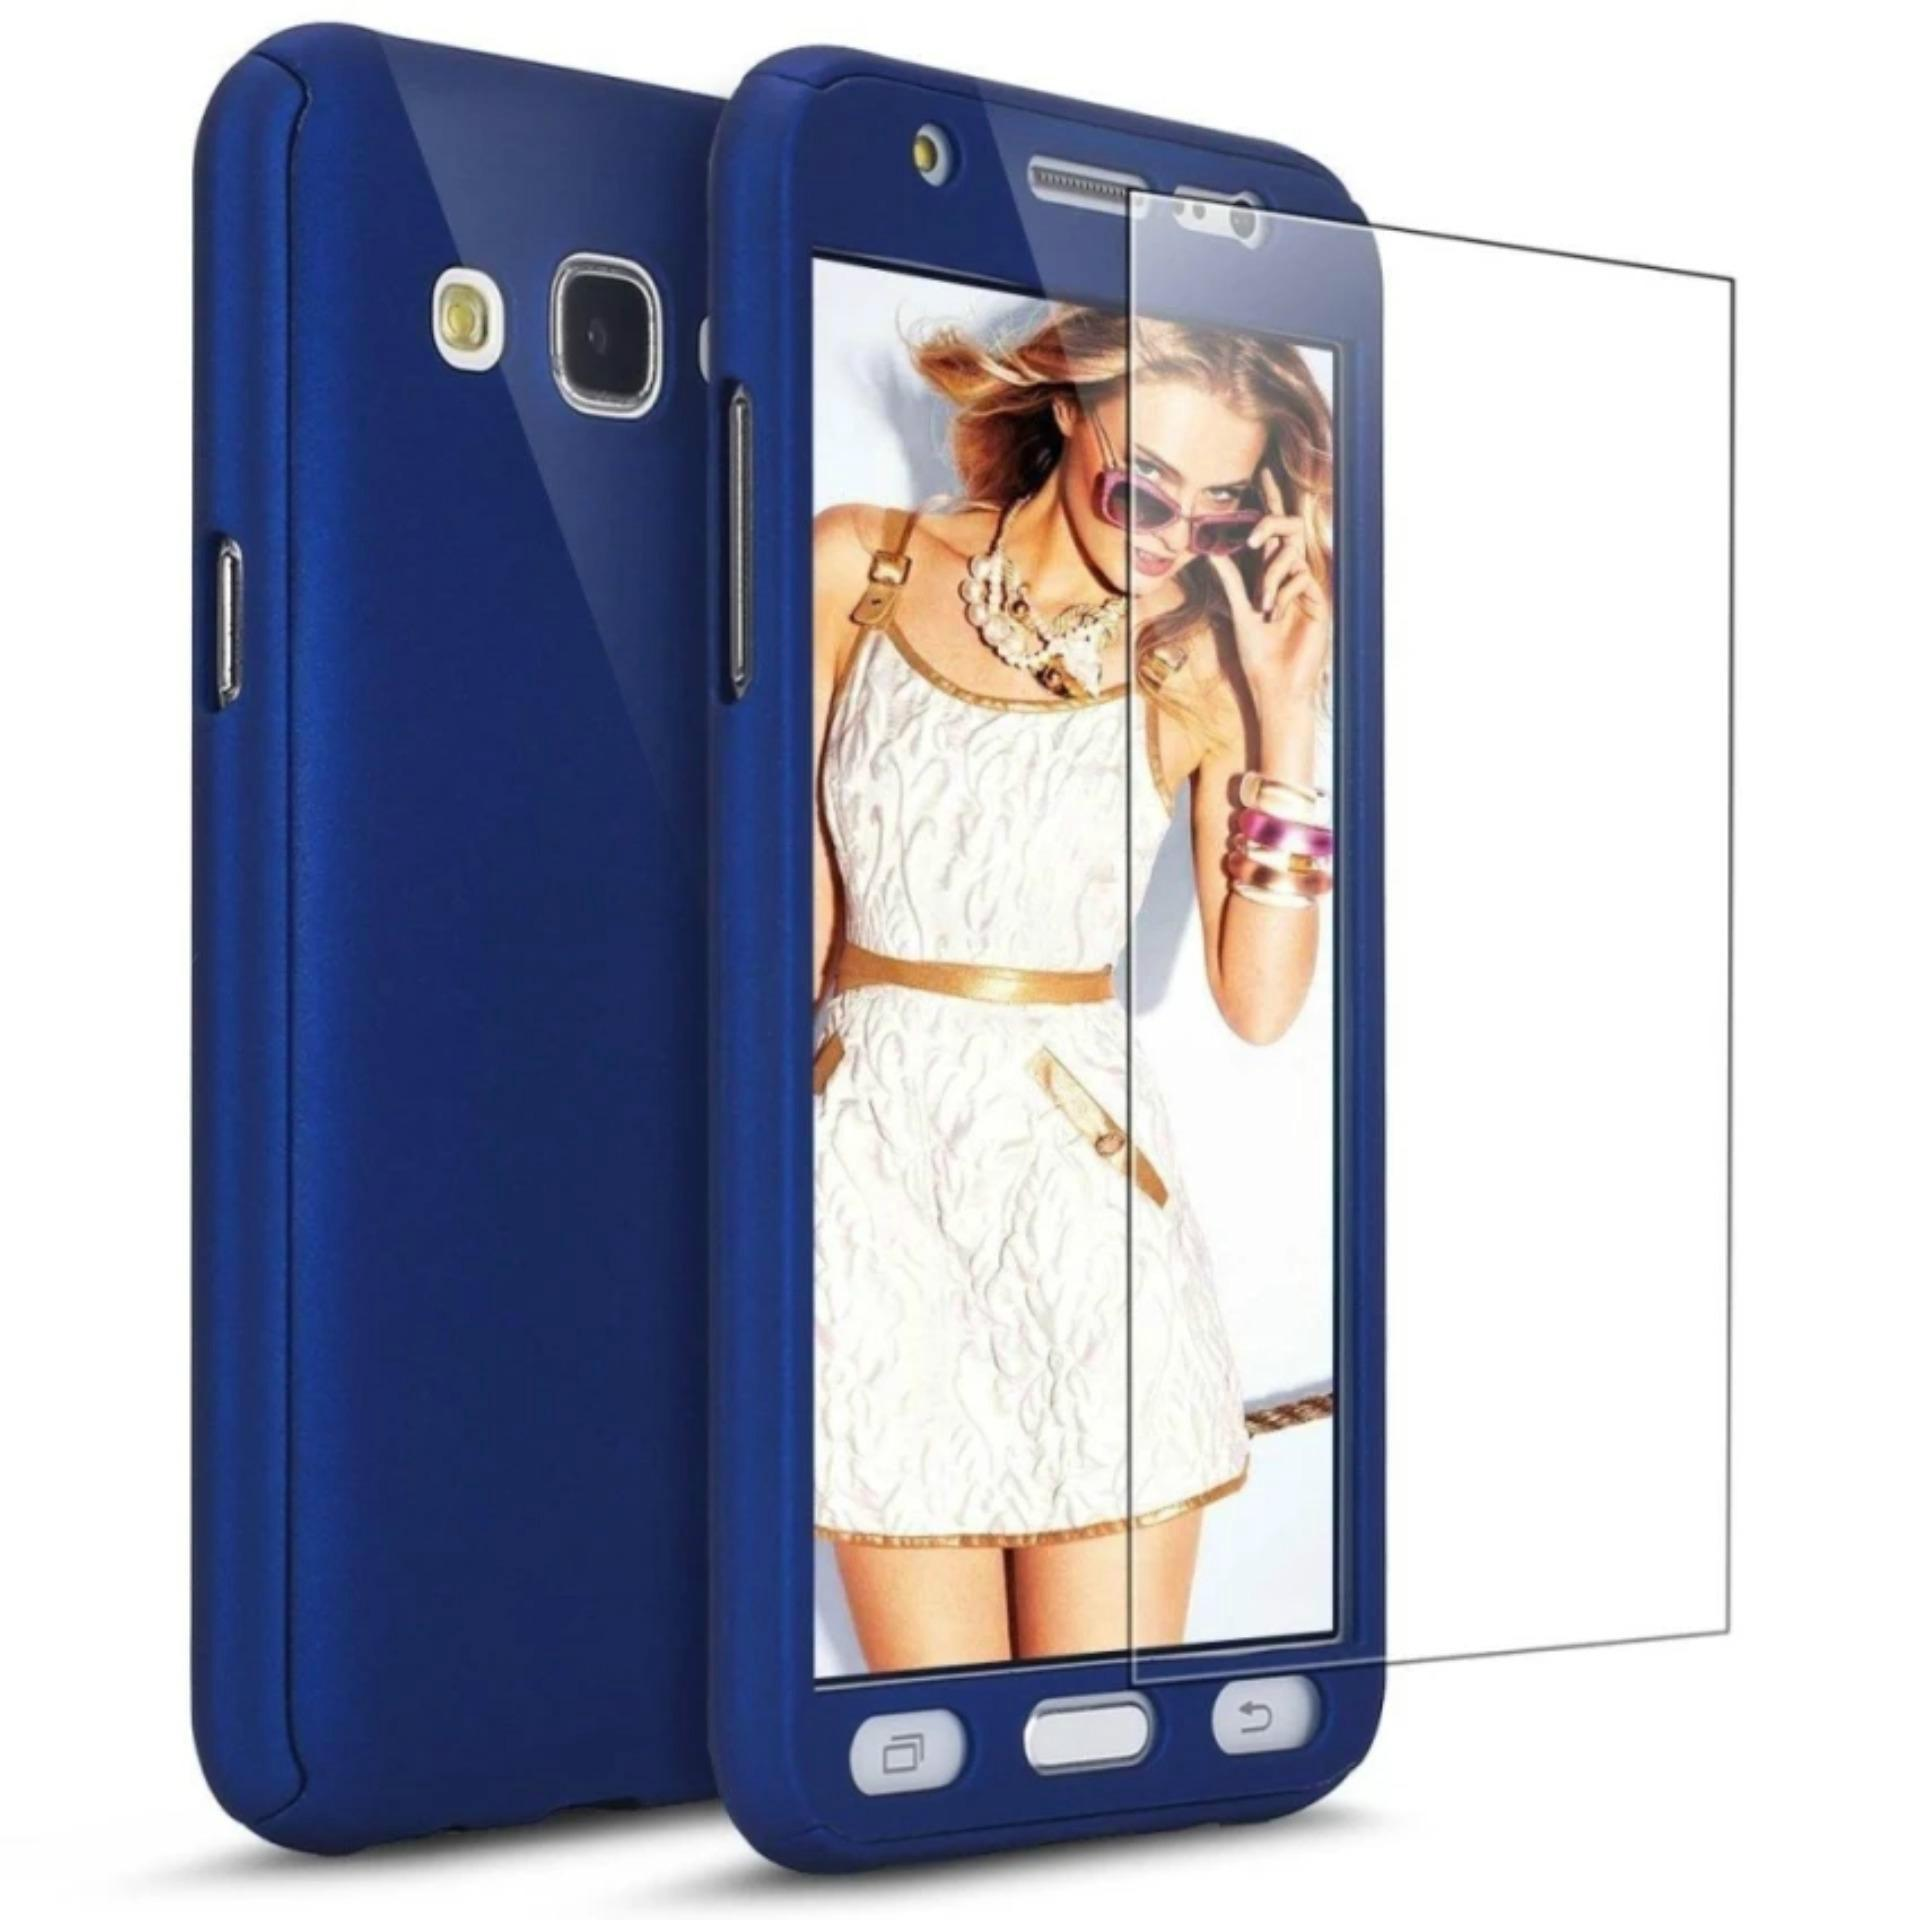 Fitur Full Hard Case Ipaky 360 For New Samsung Galaxy J250 J2 Pro